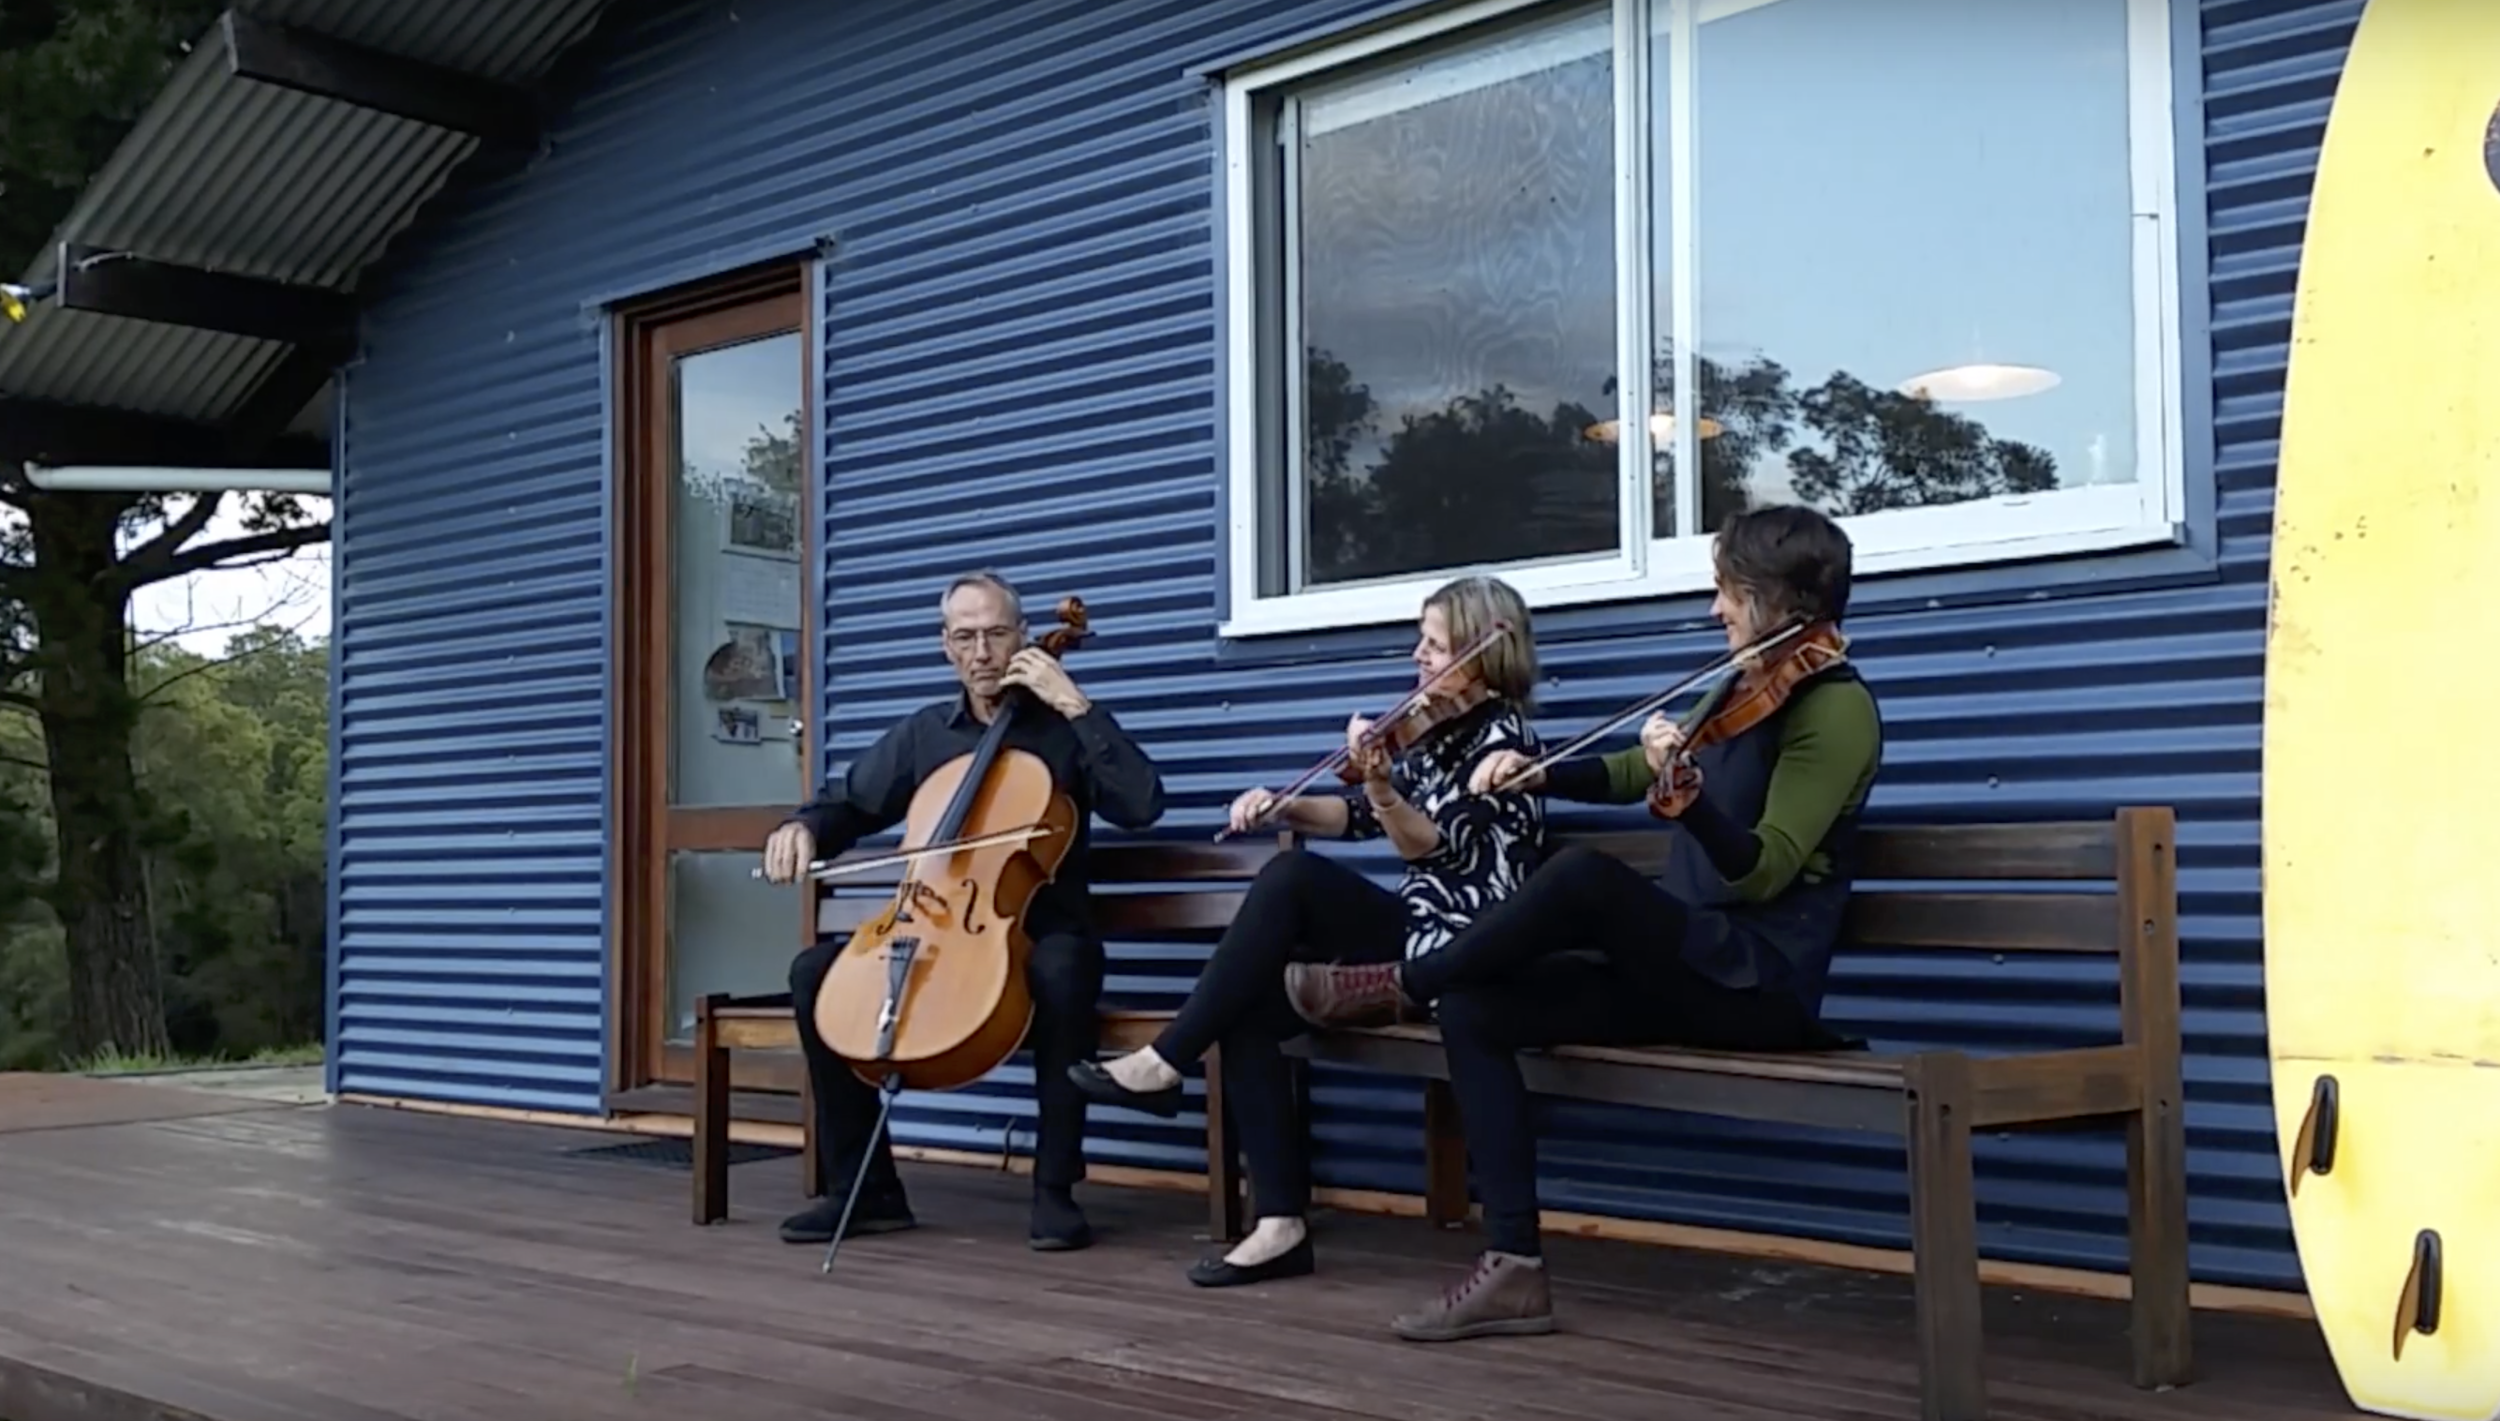 THE DORSAL FINNS (WA)  Dusting snow off their shoulders from a recent visit to Sweden, a trio of fiddle/nyckelharpa/cello play traditional Scandinavian dance music, fit for trolls and Nordic gods.